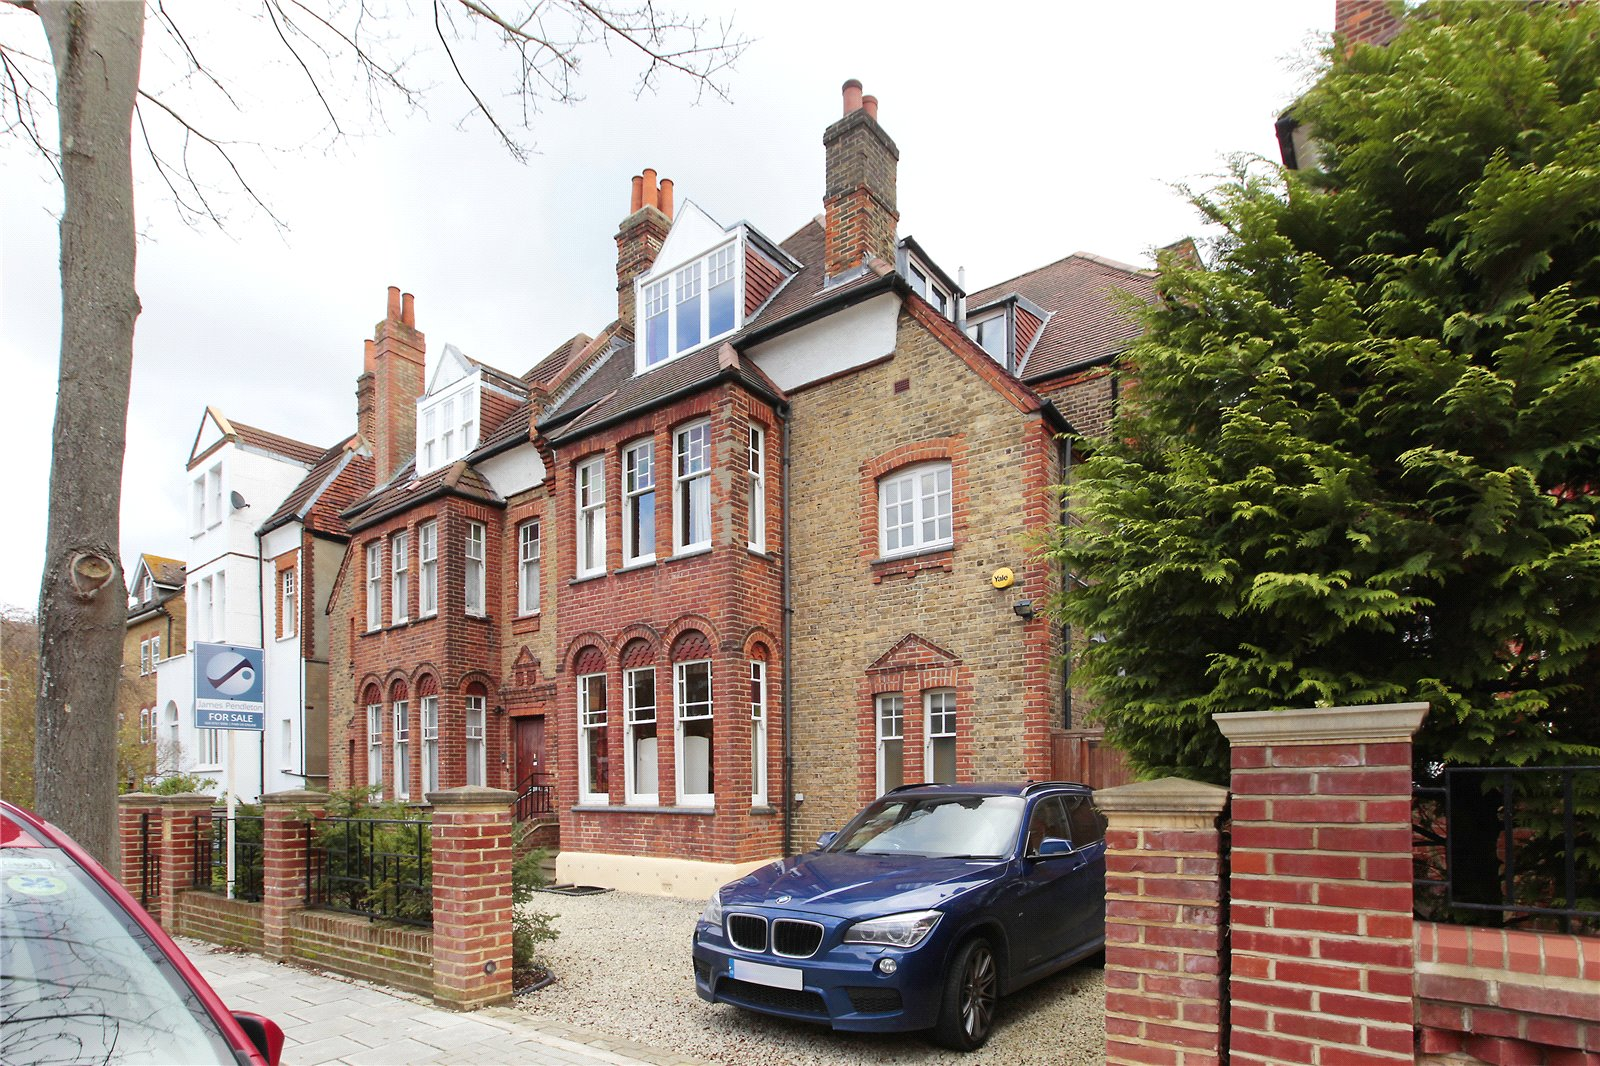 6 Bedrooms Semi Detached House for sale in Riggindale Road, Streatham, London, SW16